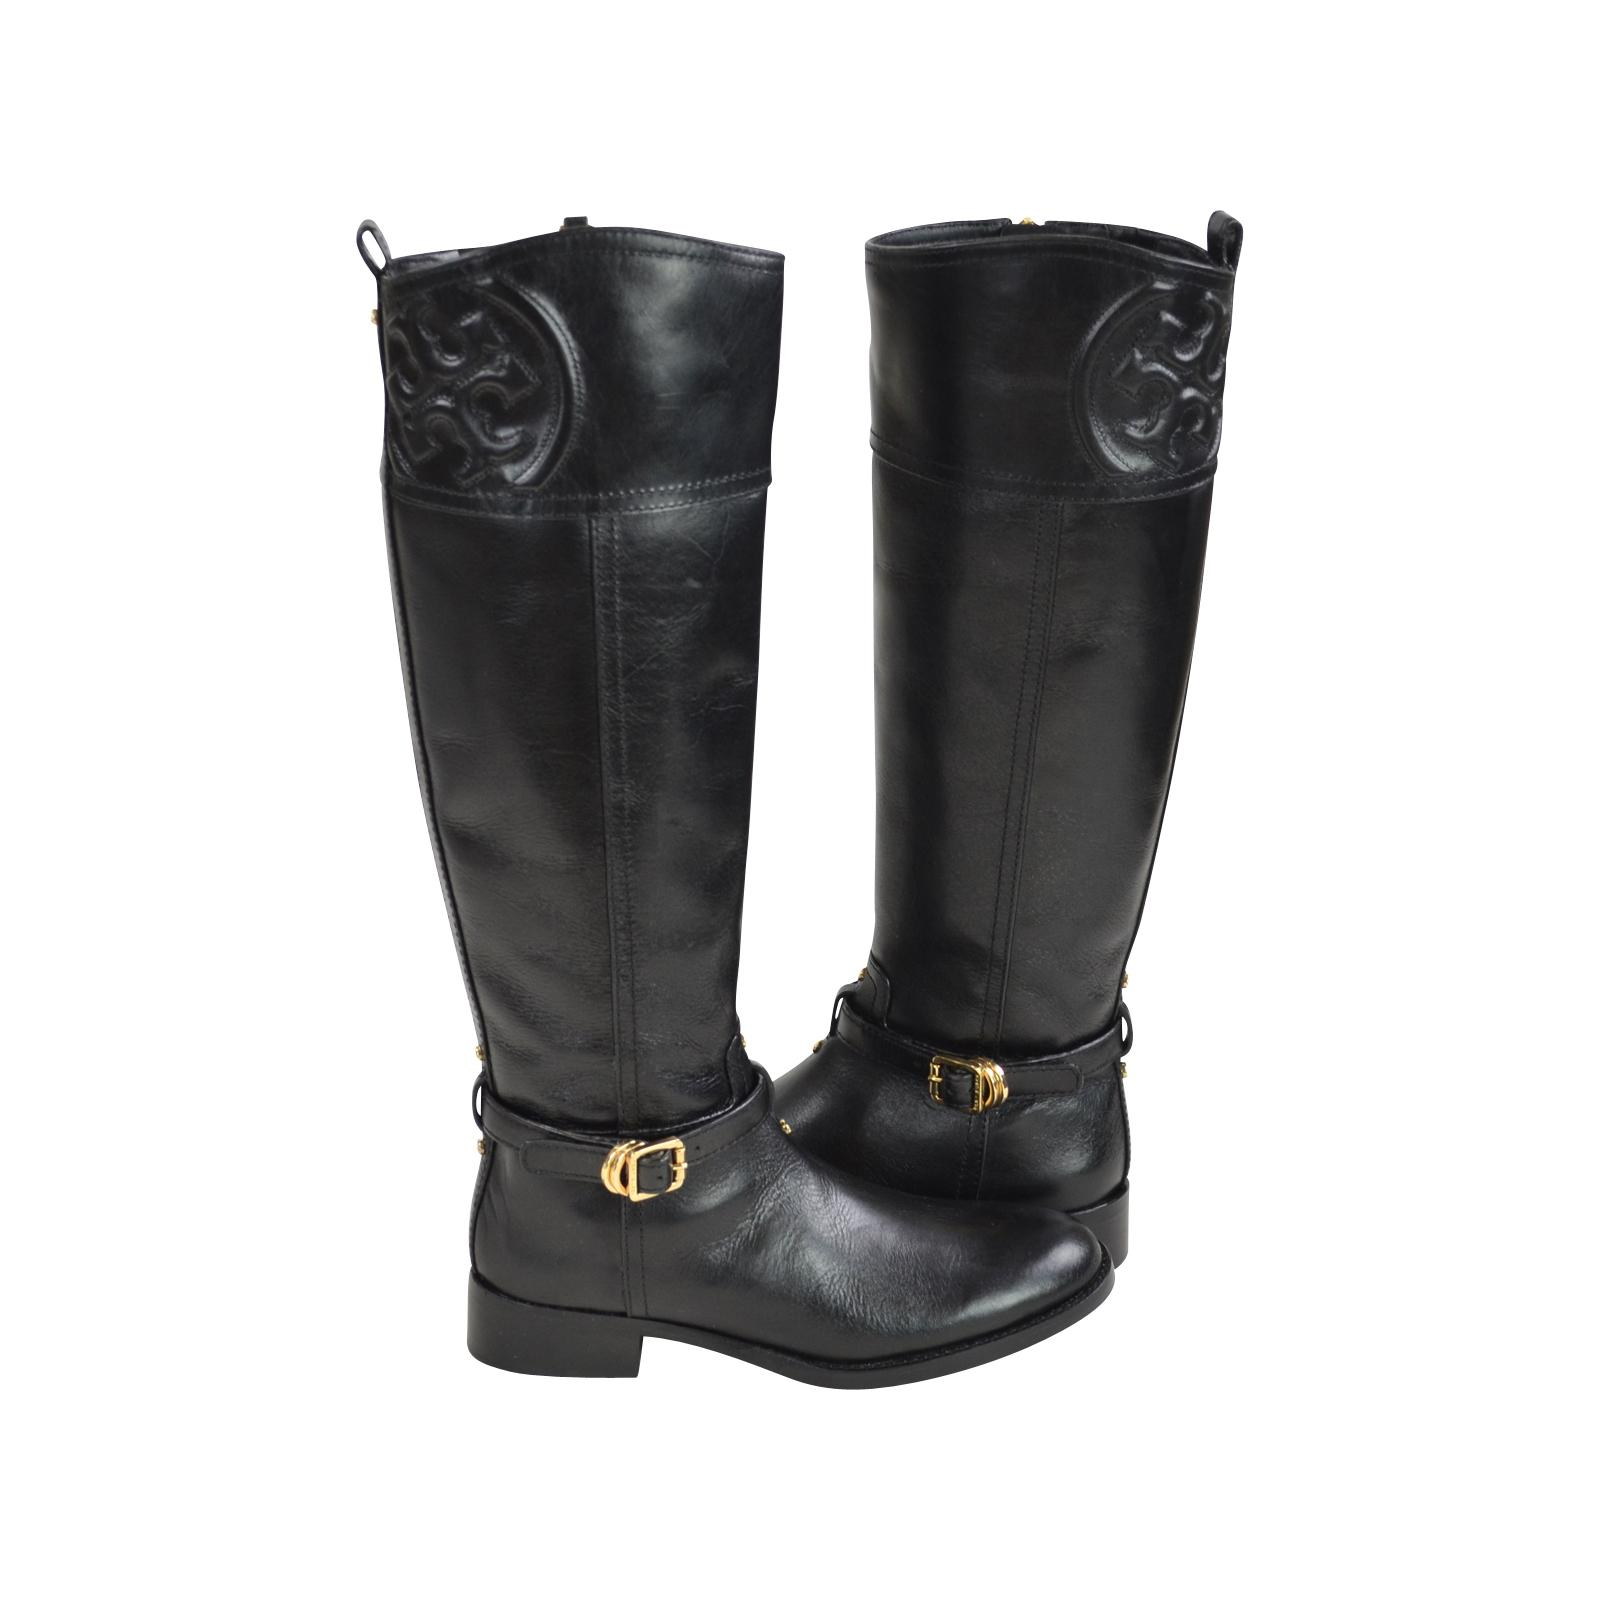 818357a04d3 ... Tory Burch Black Marlene Riding Boots Booties Size US US US 6 Regular  (M ...